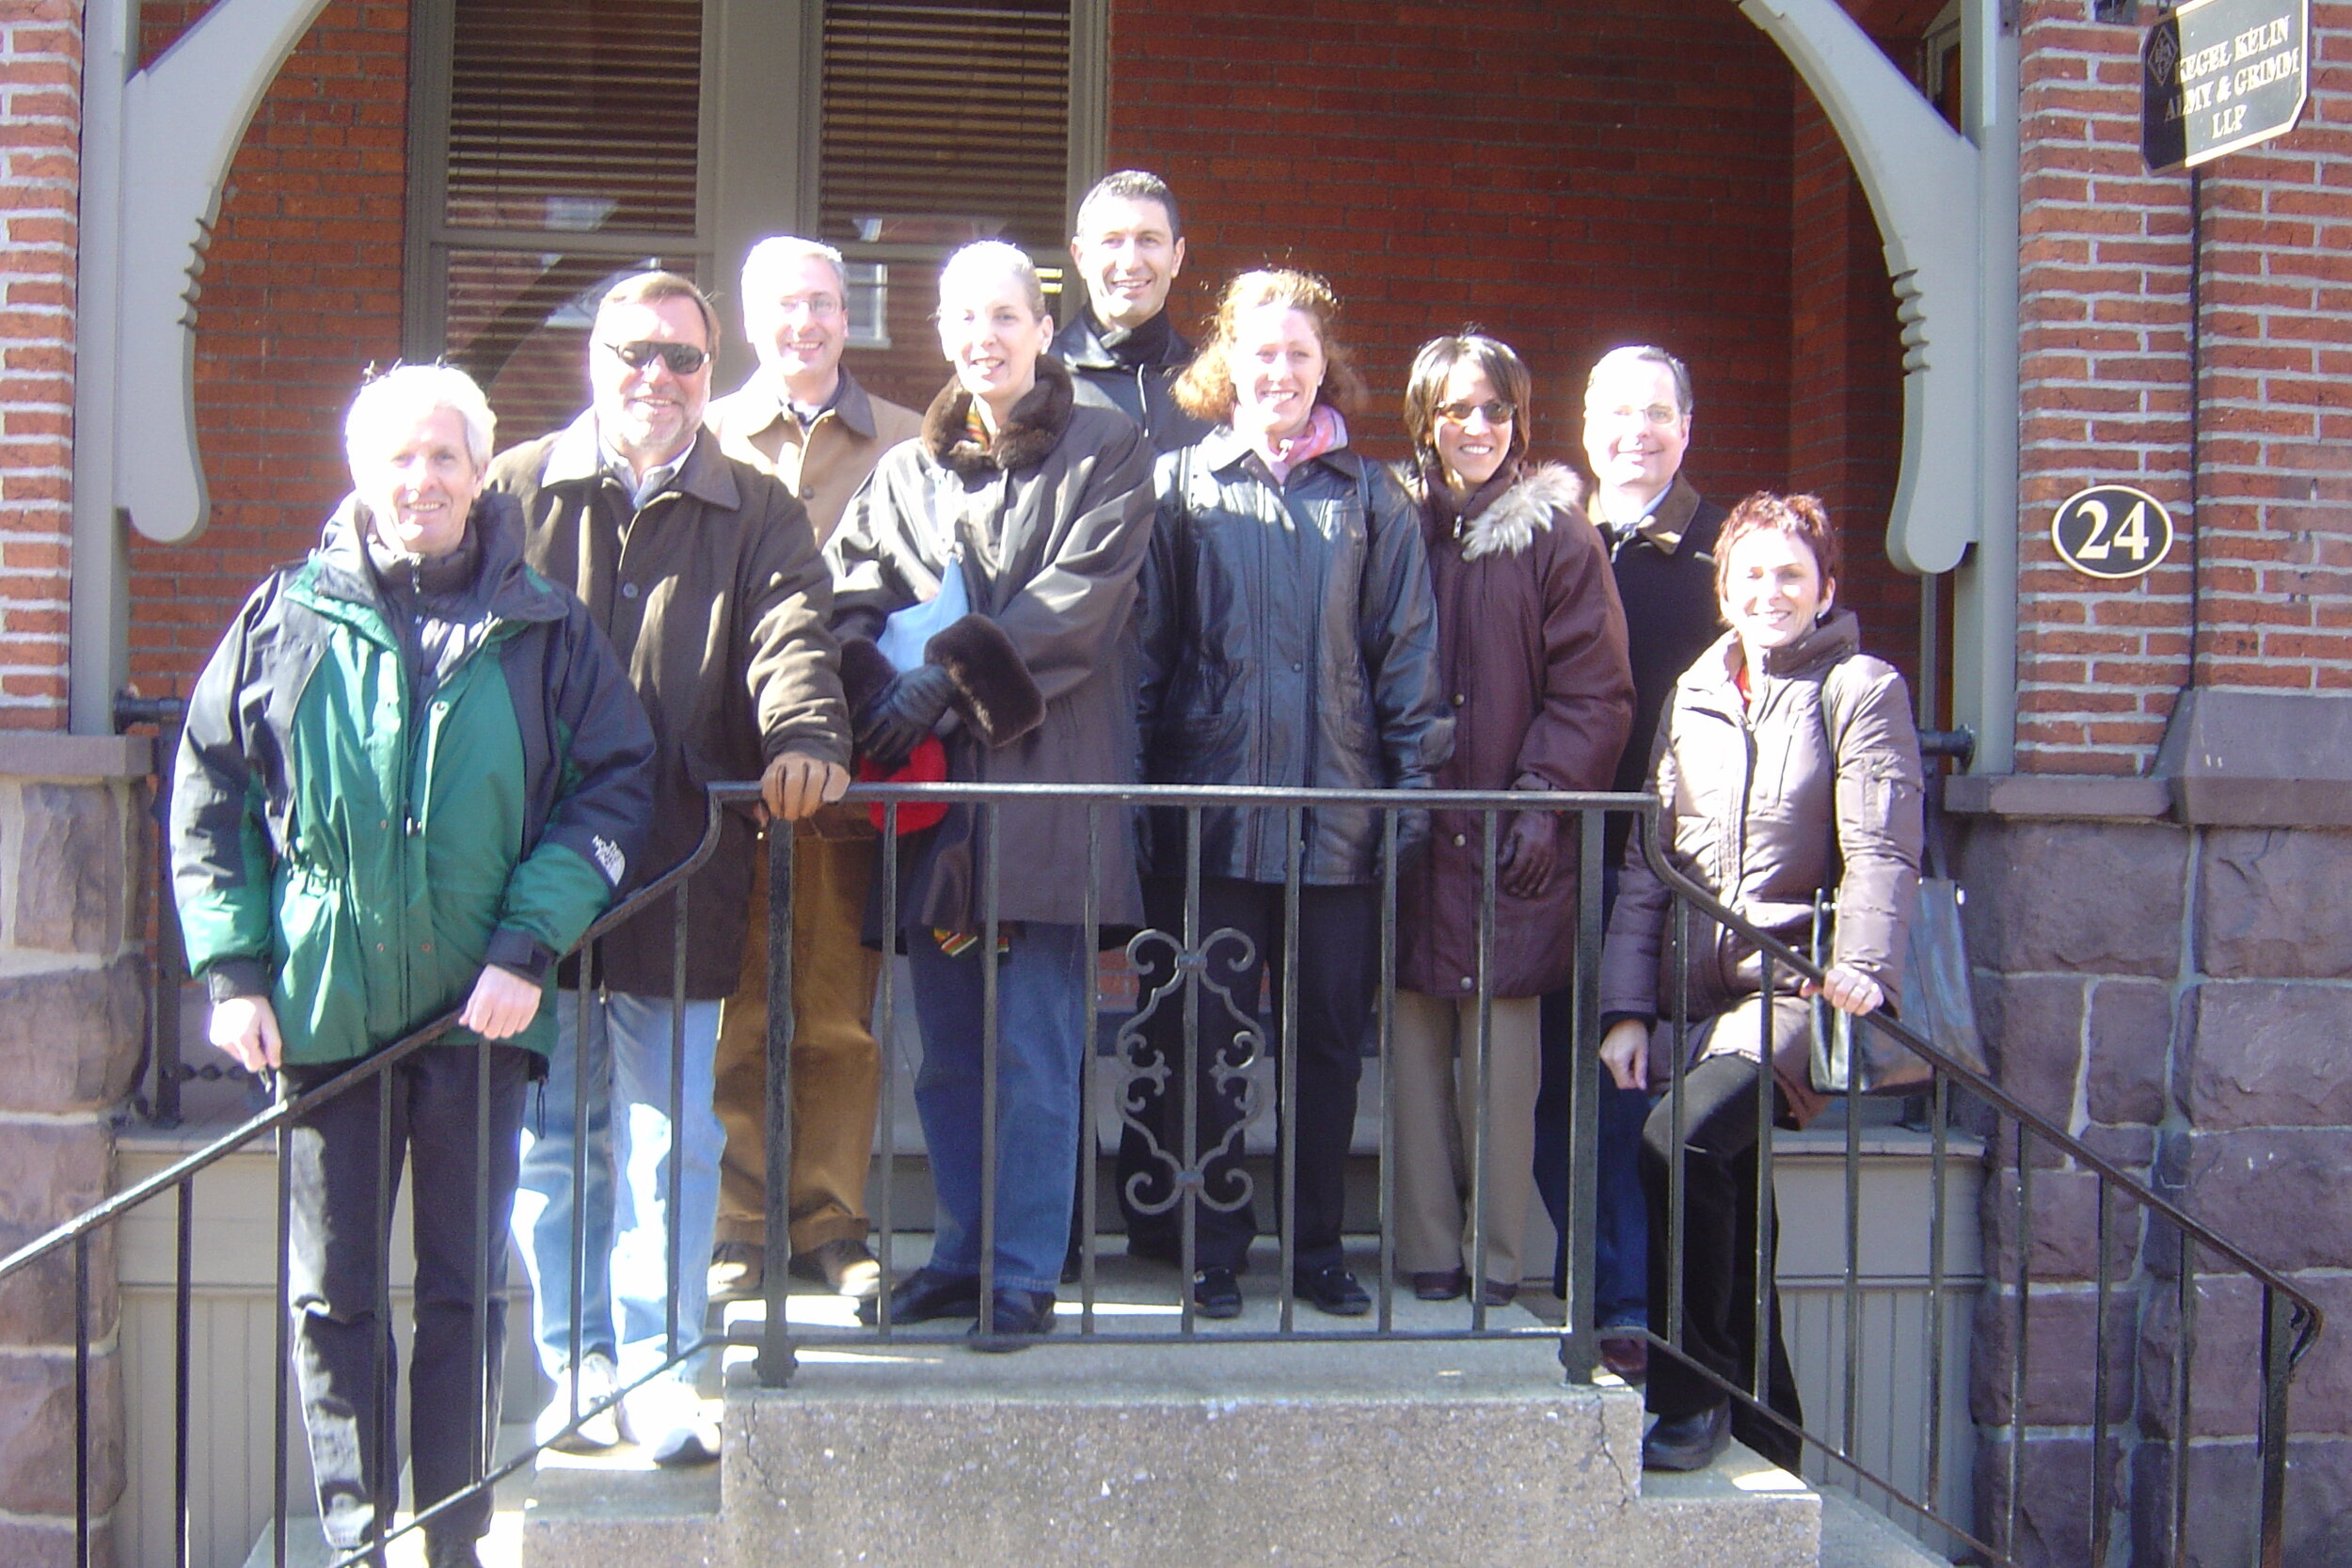 Initial Meeting of Americleft Orthodontic Group Participants at Original Lancaster Cleft Palate Clinic, Lancaster, PA, February 2006    From left to right: W. Shaw, R. Long, E. Howard, M. Cohen, J. Daskalogiannakis, K. Russell, A. Mercado, R. Hathaway, G. Semb